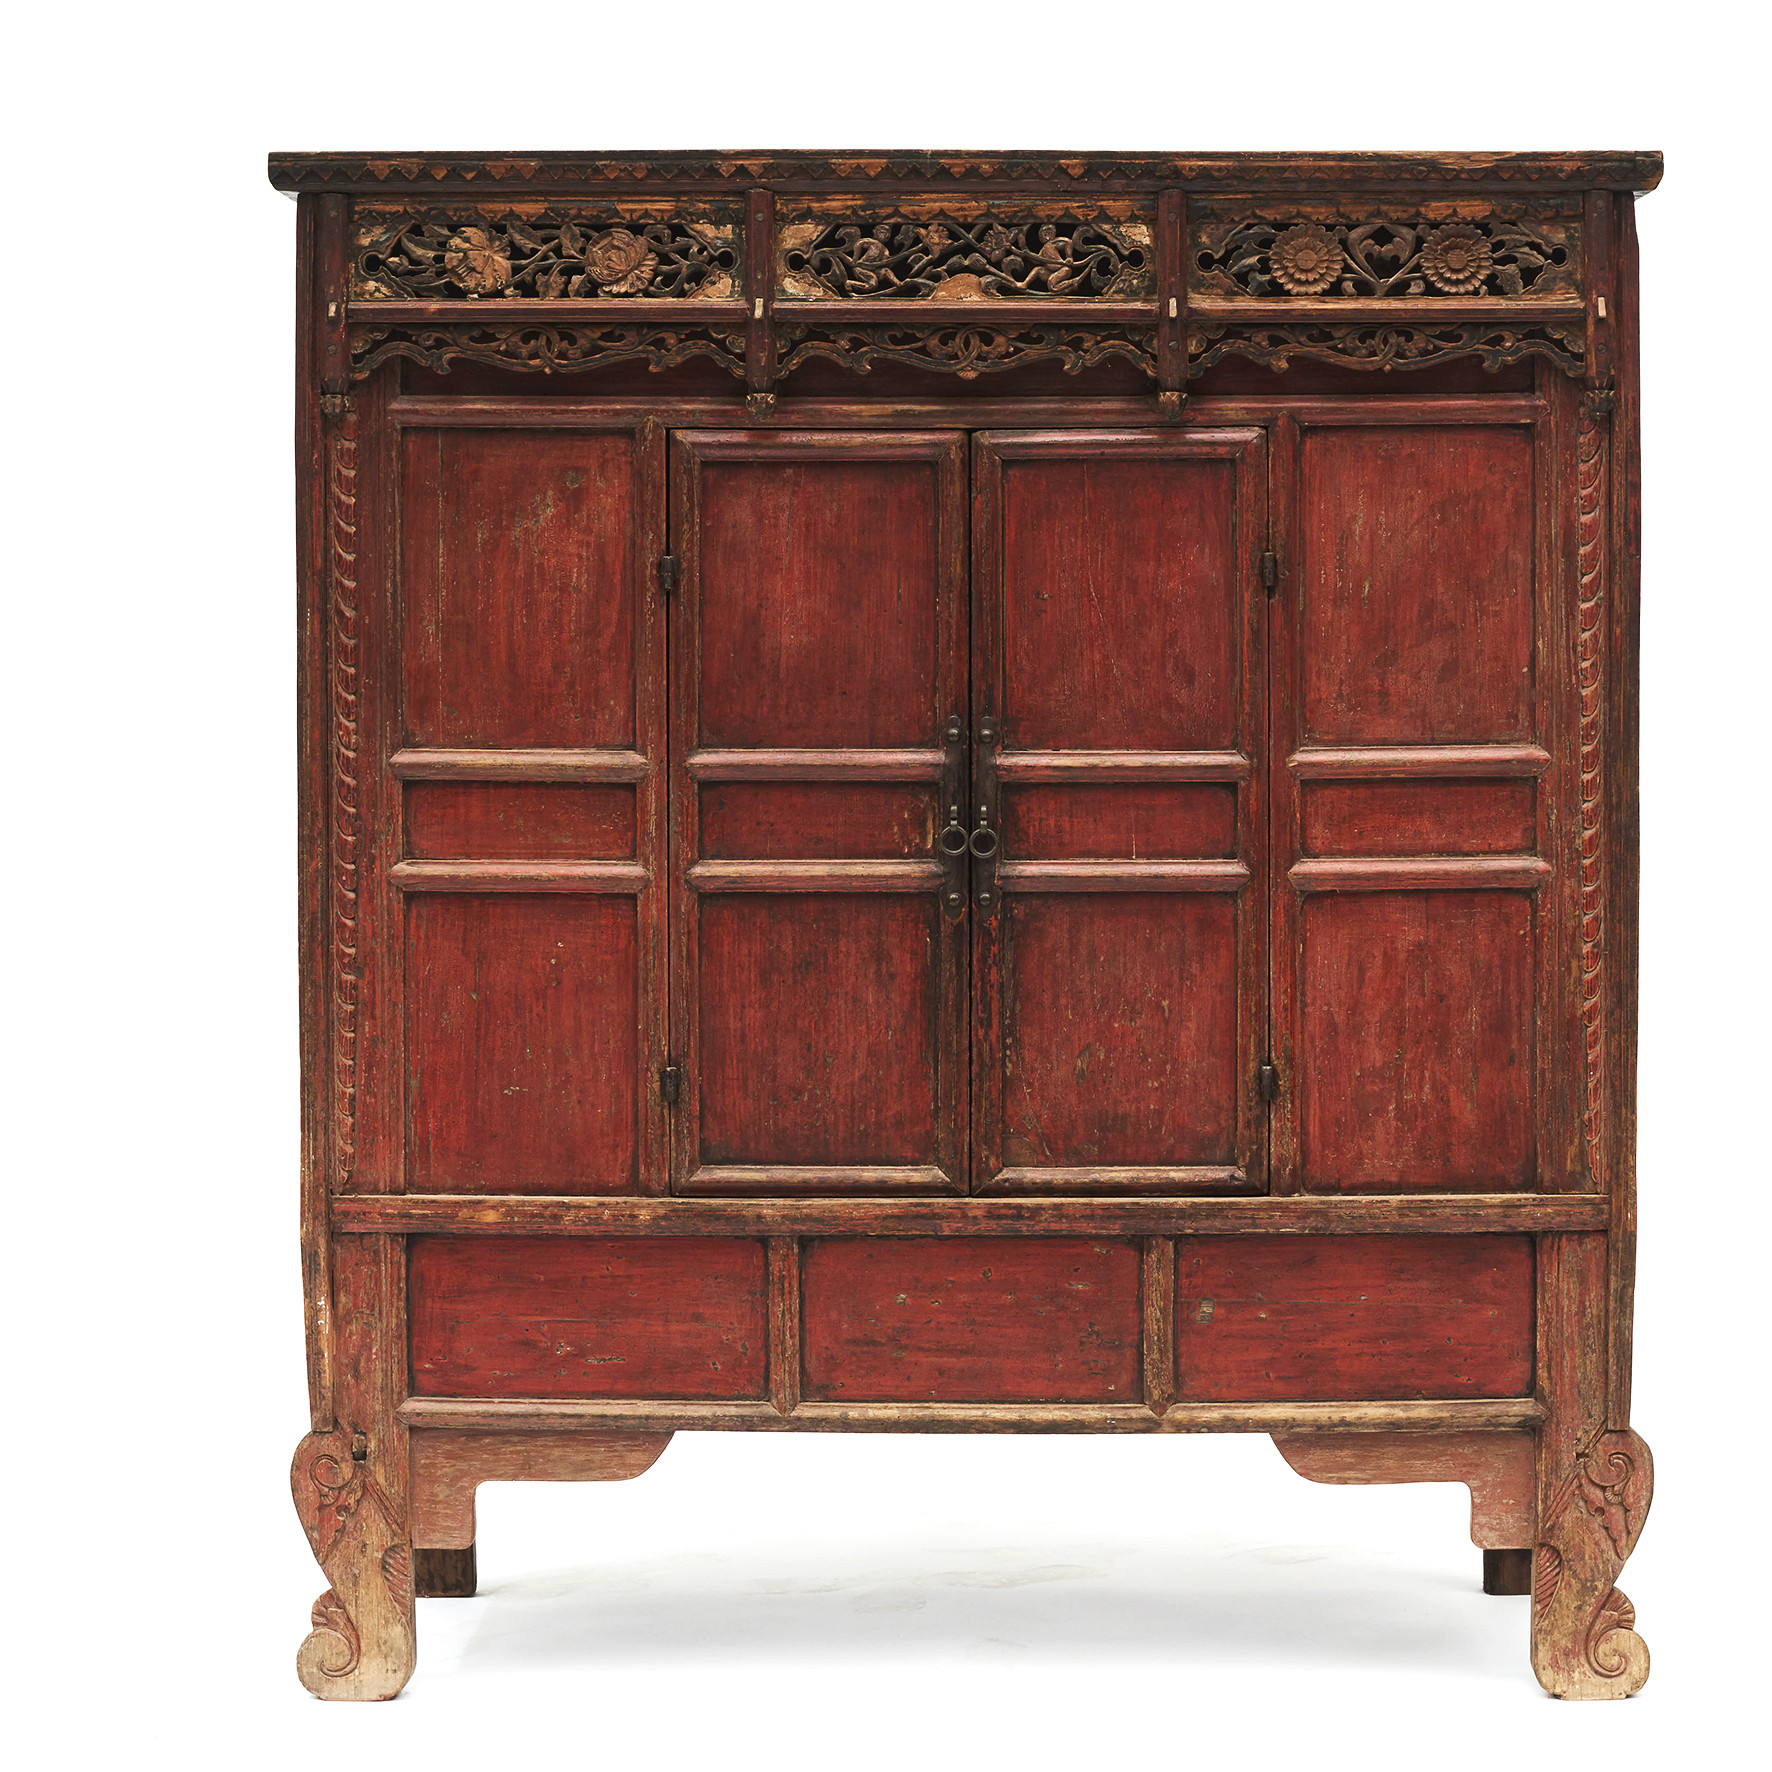 Rare and well-preserved 15-16th century Ming dynasty cabinet